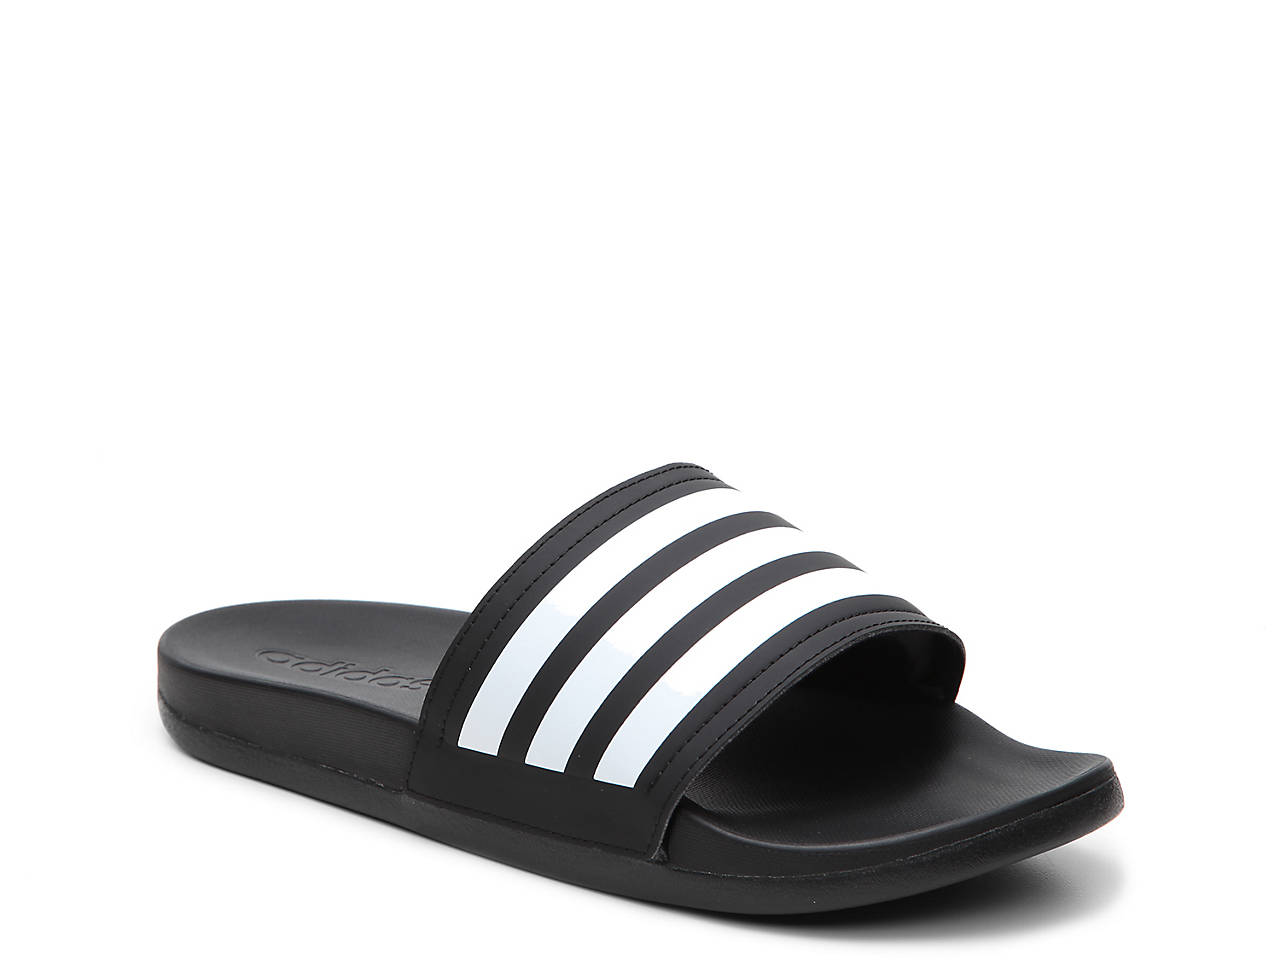 adidas Adilette Cloudfoam Ultra Stripes Slide Sandal - Women s ... 3a1dce0e0